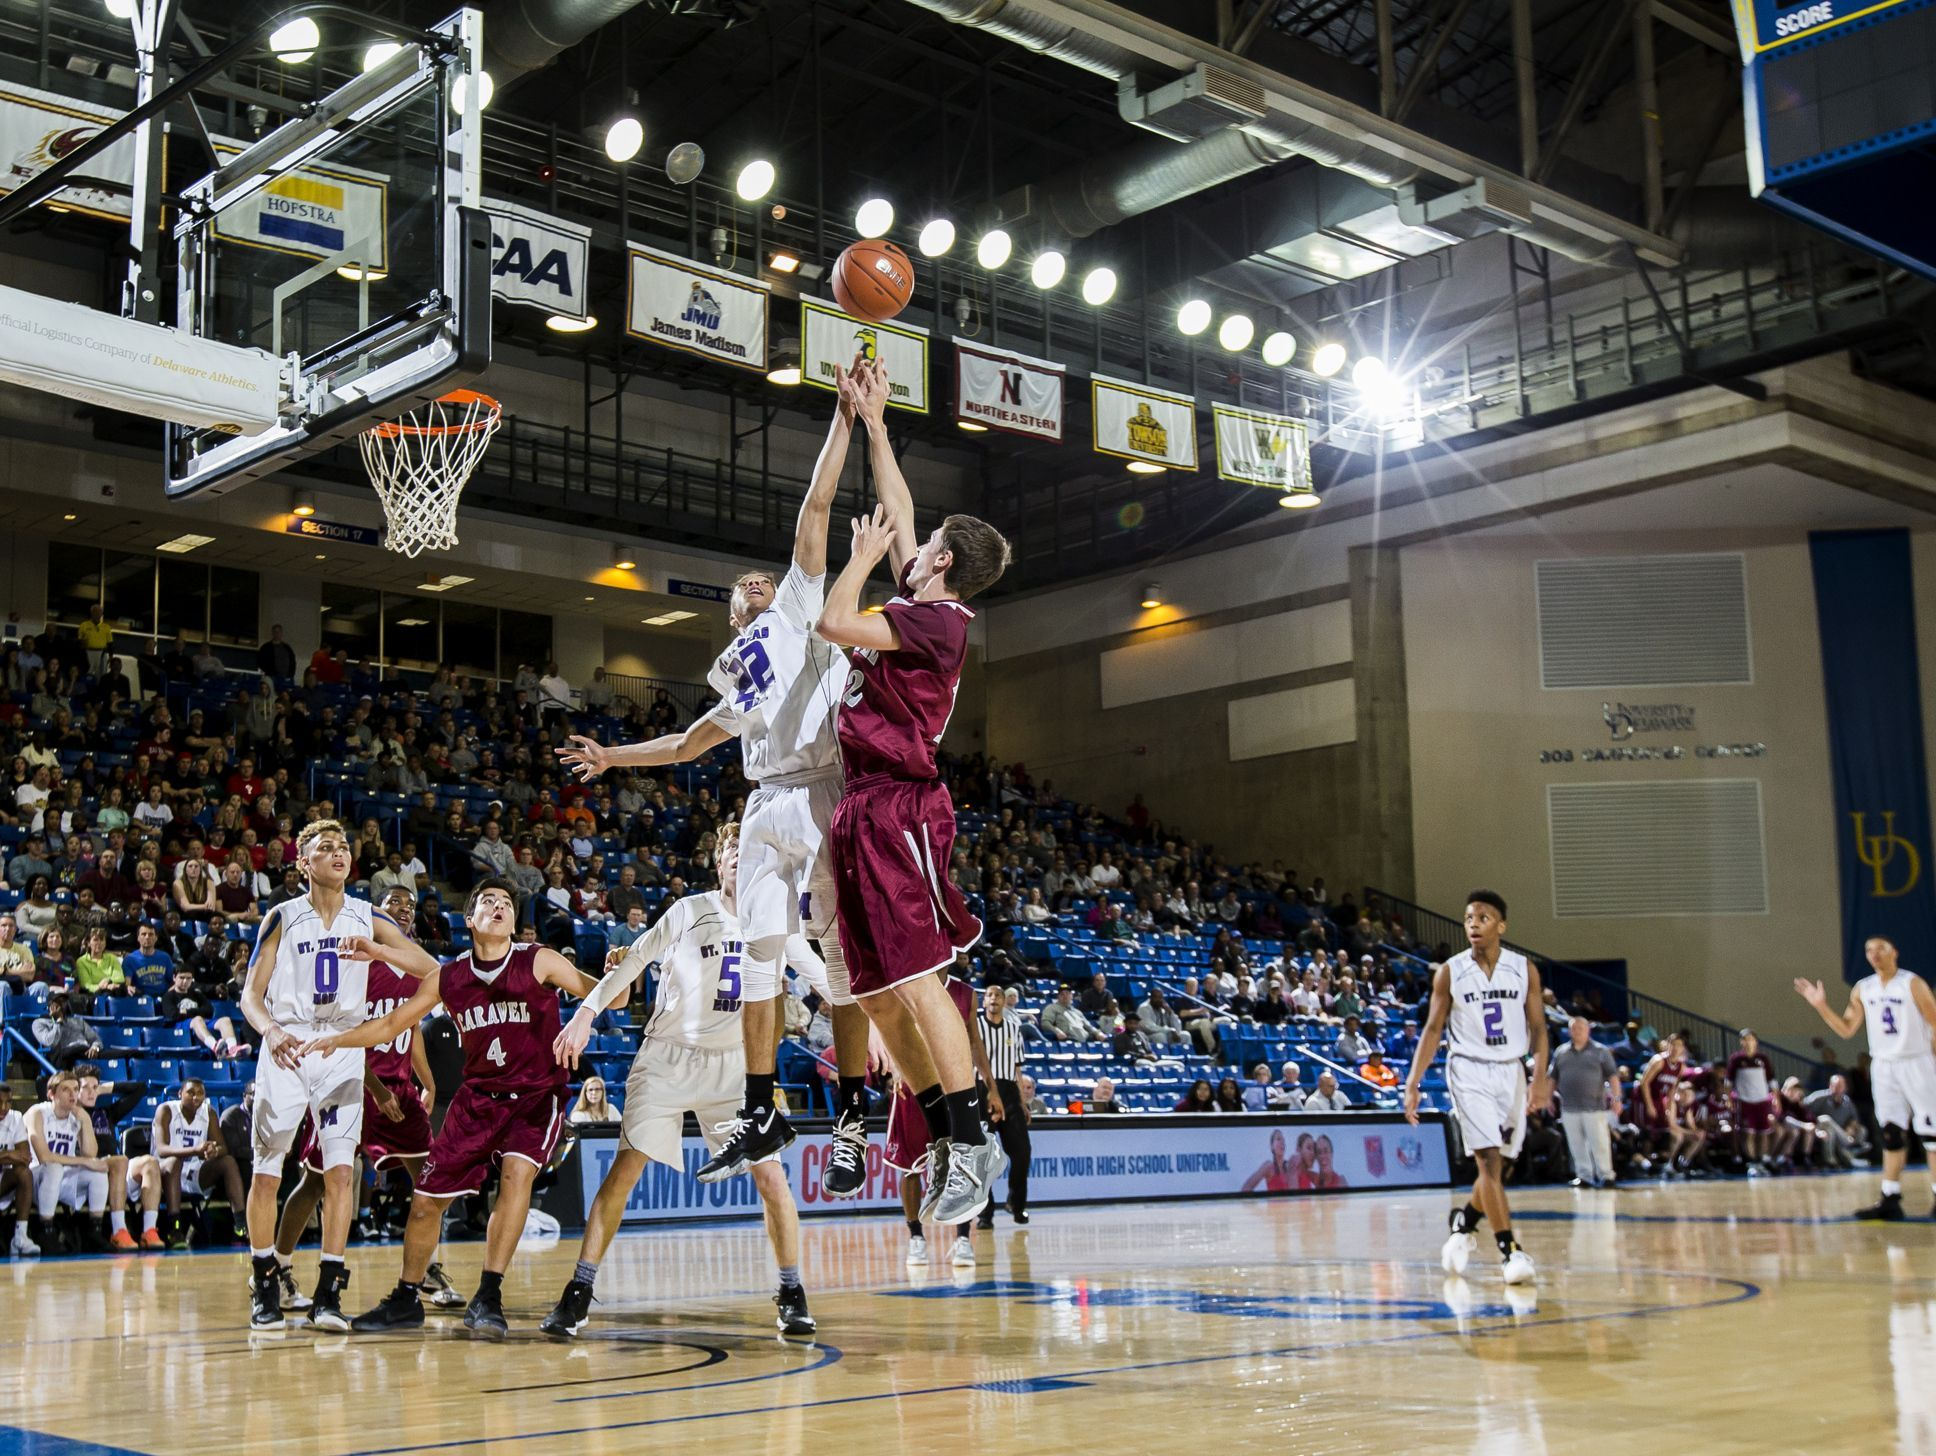 Caravel's Bradley Kaden puts up a shot over St. Thomas More's Alvin West in the first half of Caravel Academy's 48-47 win over St. Thomas More Academy in the DIAA Boy's State Basketball Tournament semi-finals at the Bob Carpenter Center in Newark on Thursday evening.